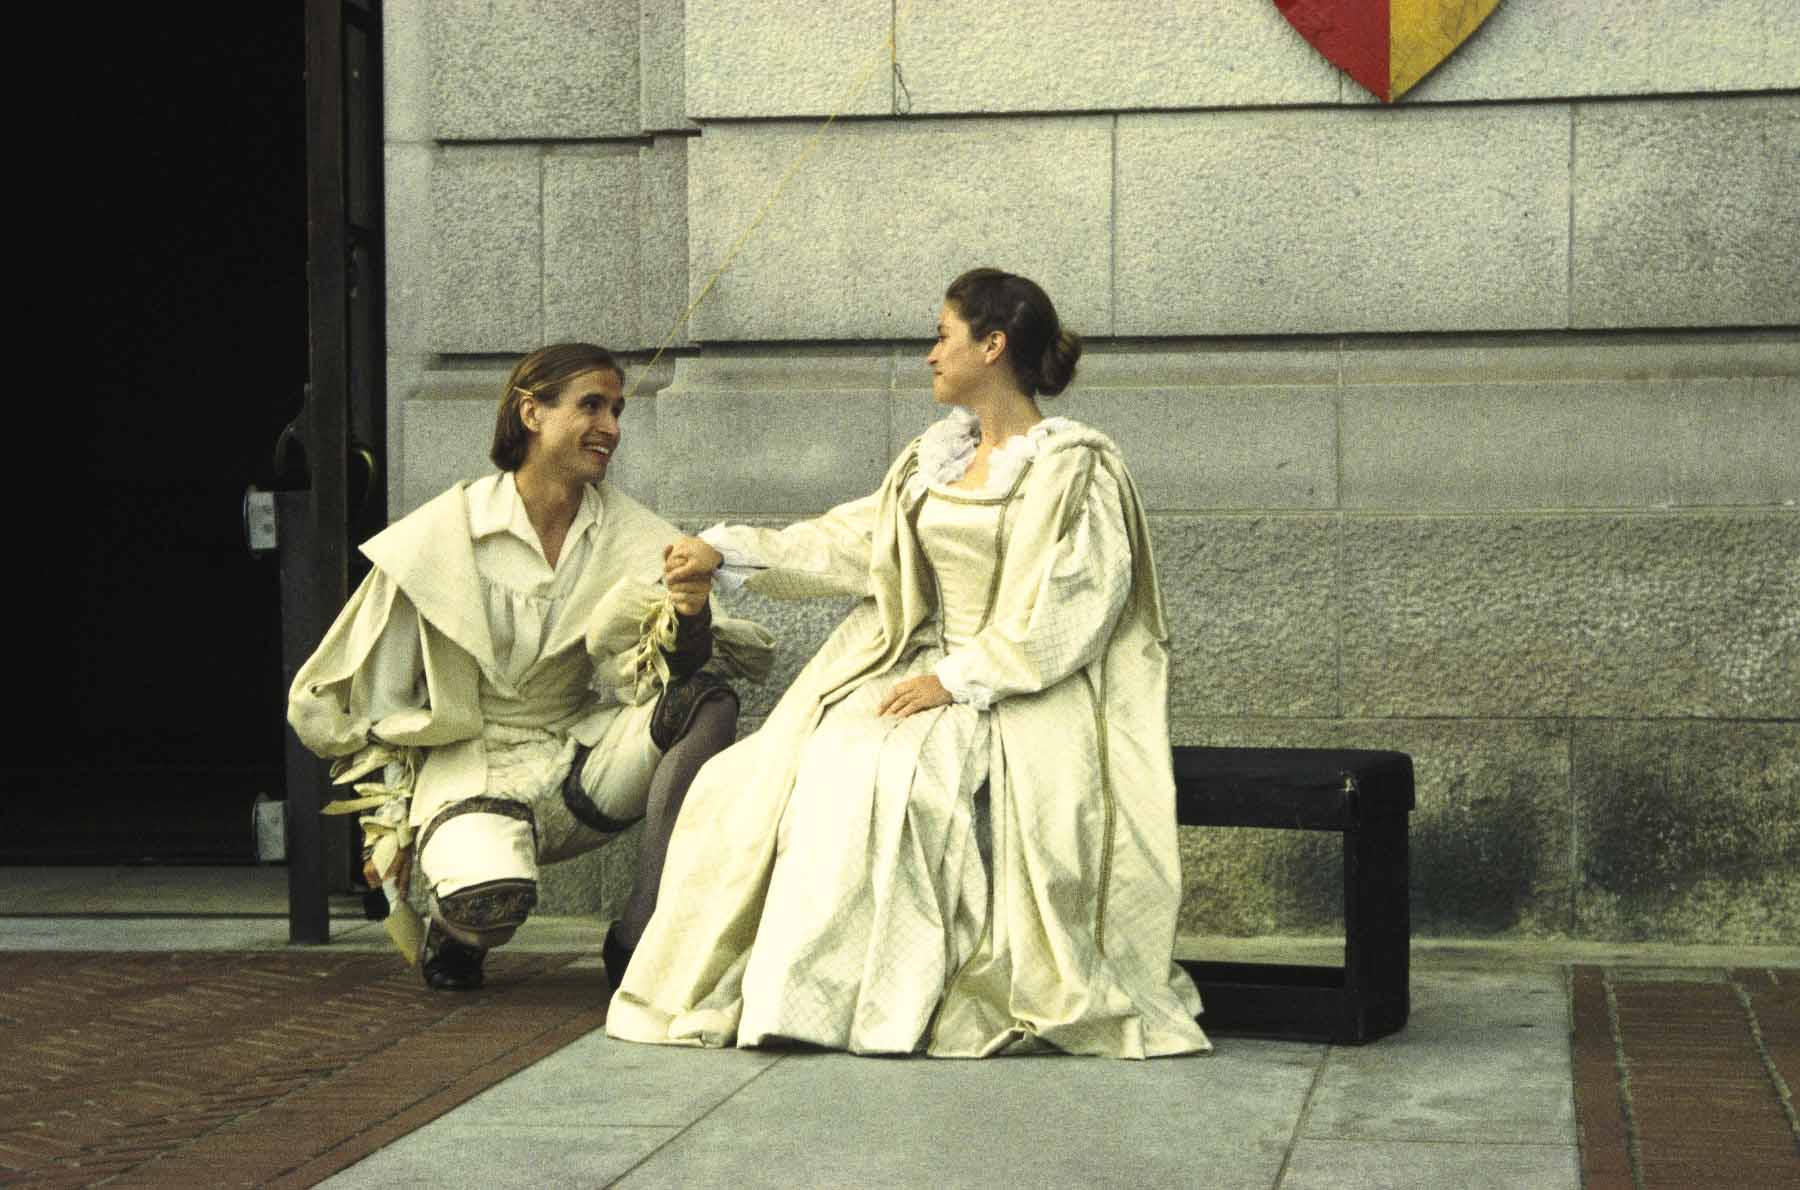 a comparison of shakespeares the merchant of venice and much ado about nothing This year frank benson also offered the merchant of venice, twelfth night, much ado about nothing, henry v, julius the shakespeare play was much ado about nothing.